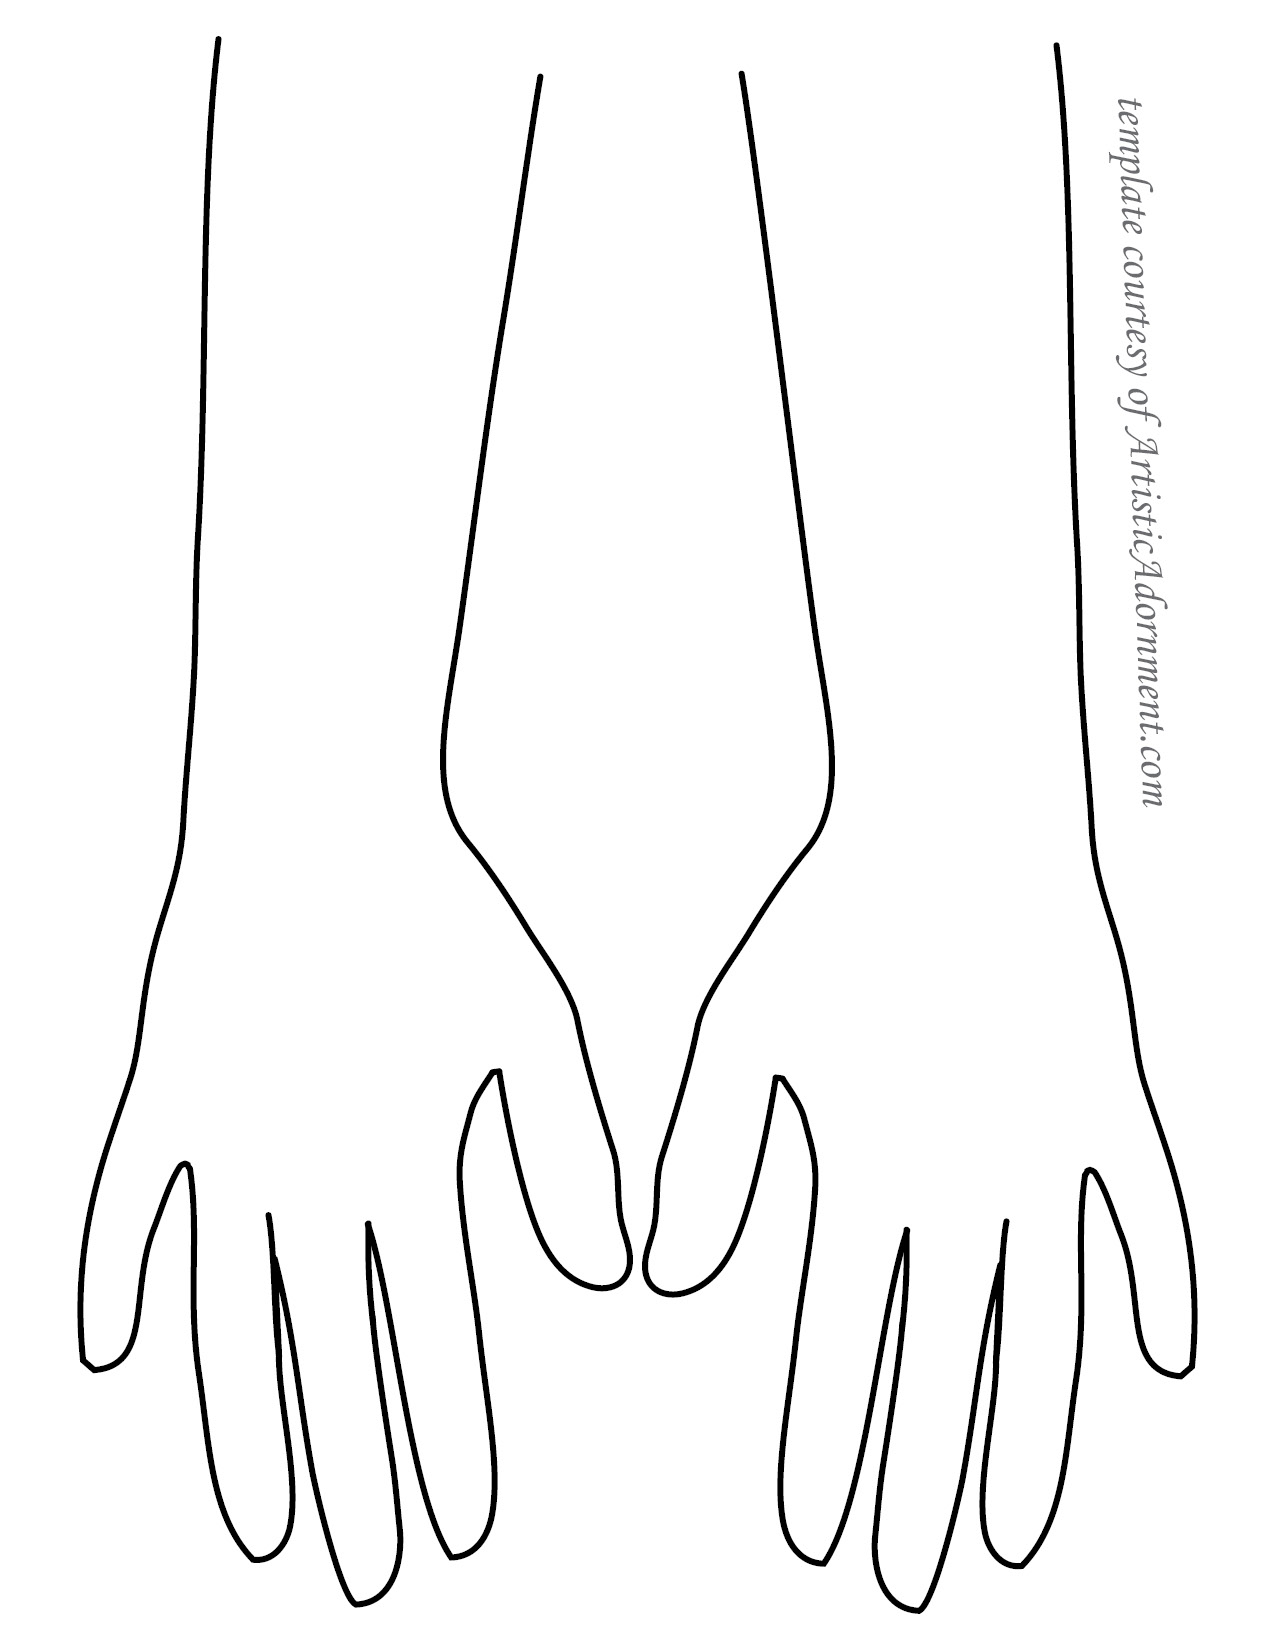 Free Henna Template - Backs of Hands - ArtisticAdornment.com